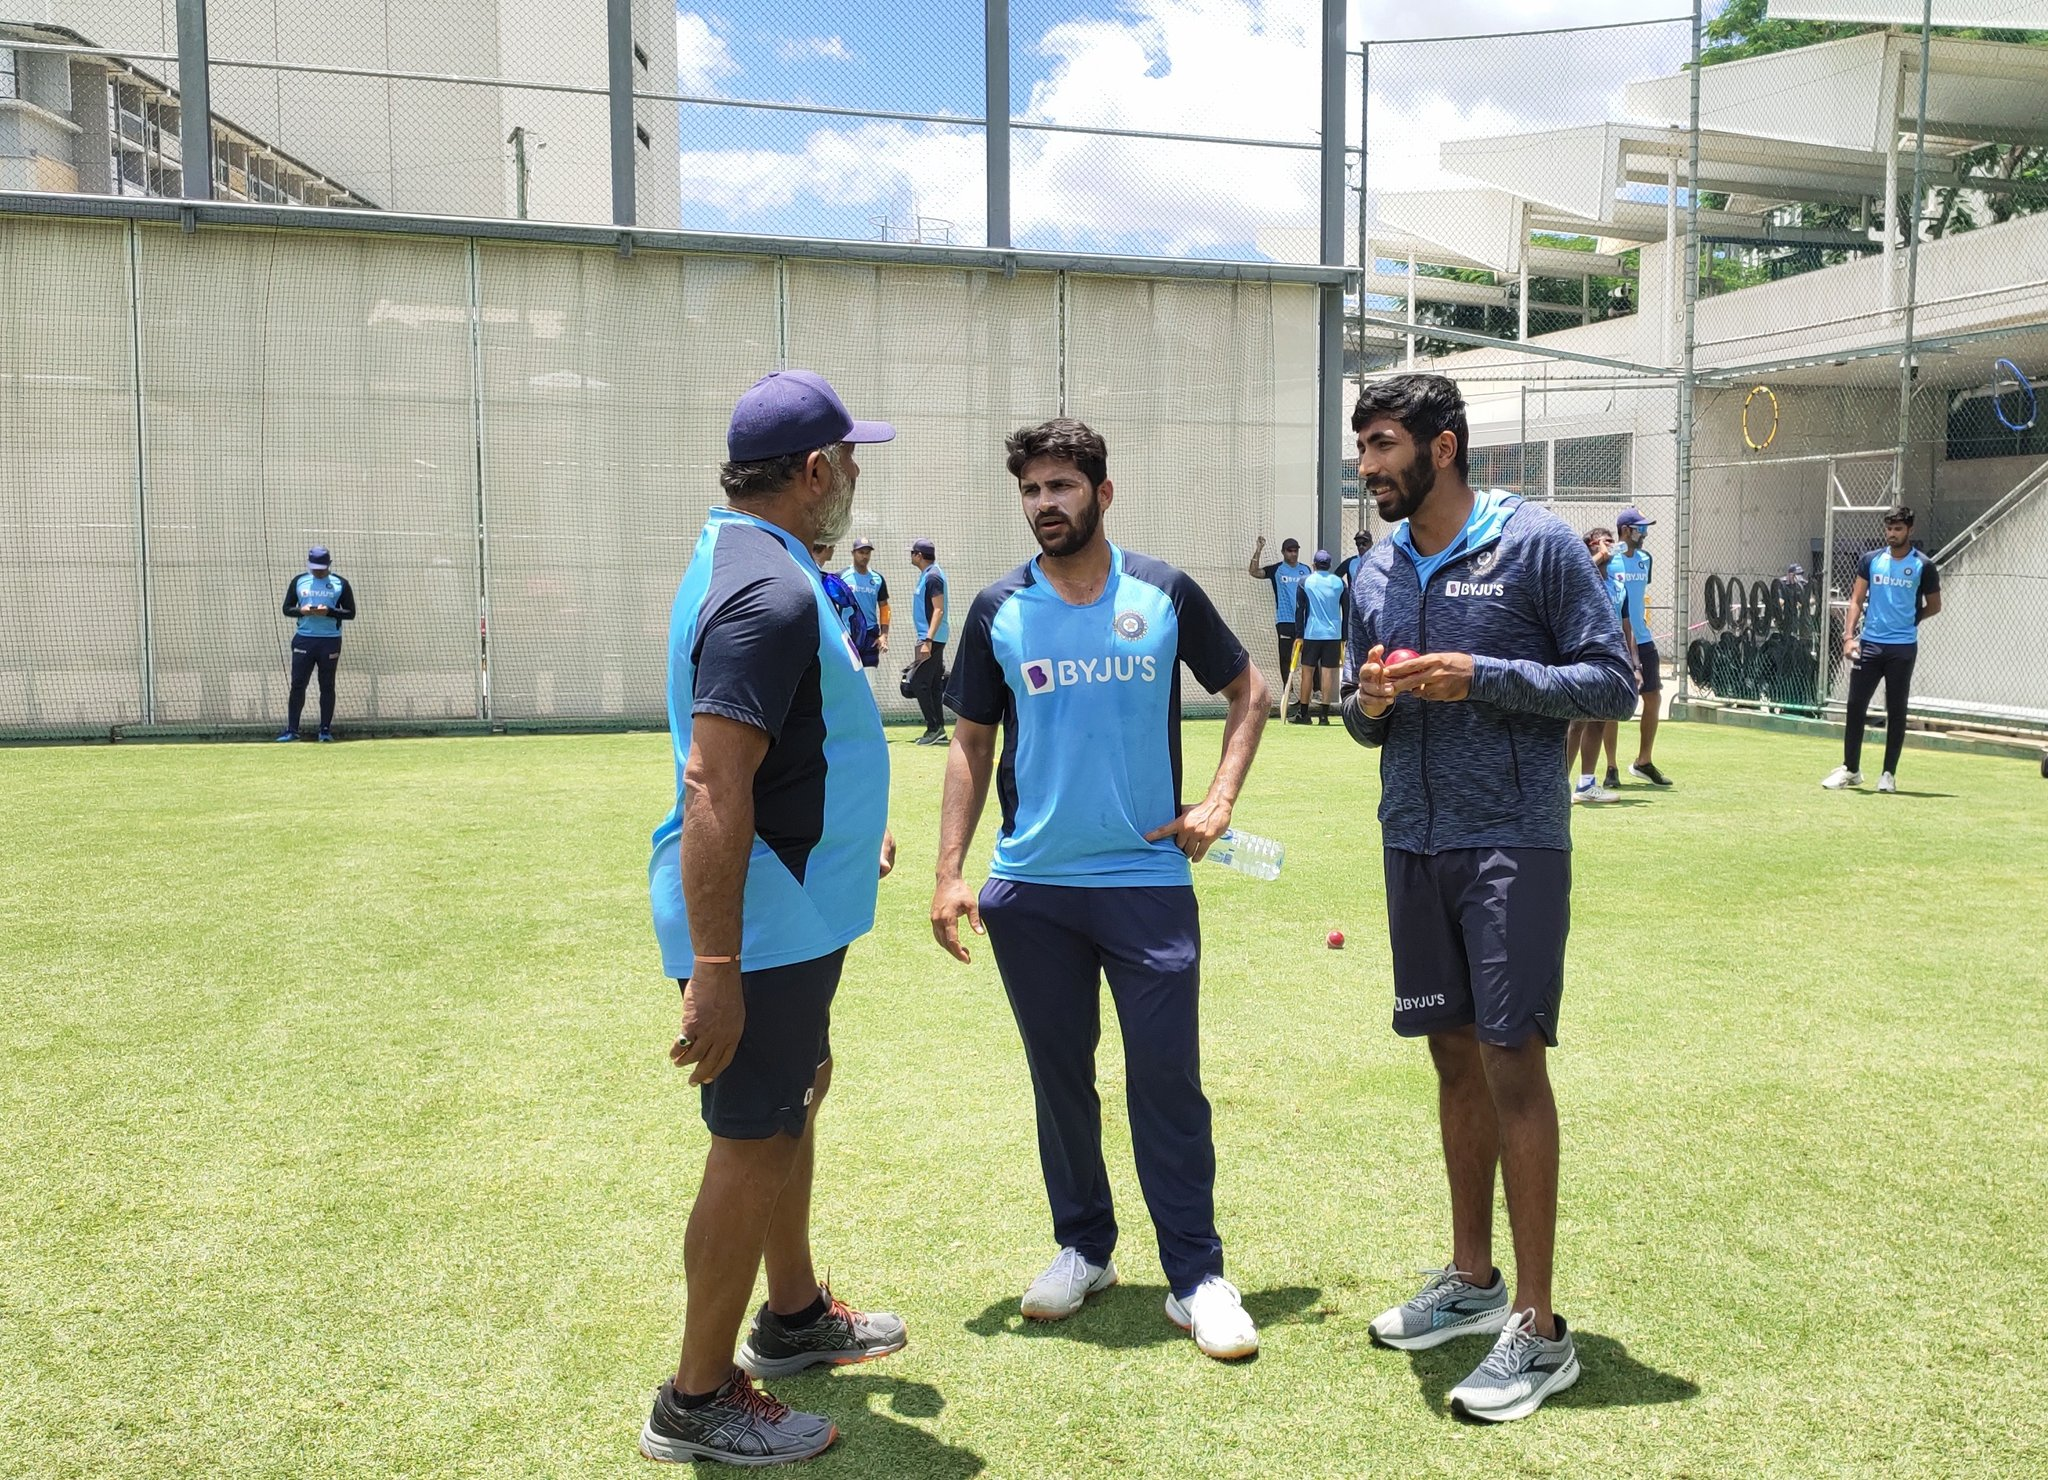 Shardul Thakur in conversation with B Arun and Jasprit Bumrah | BCCI Twitter